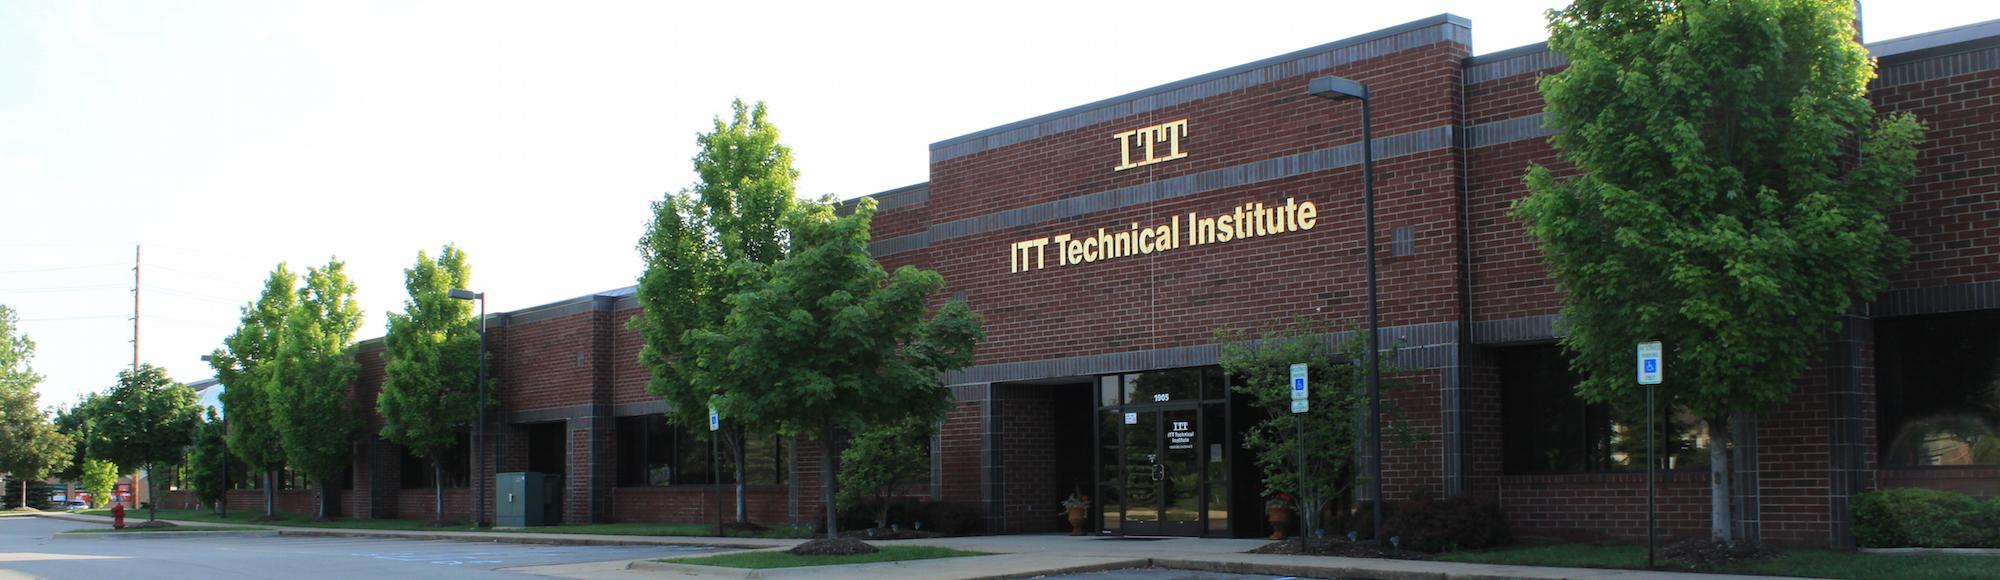 ITT Tech just shut down, which may actually be good for its students